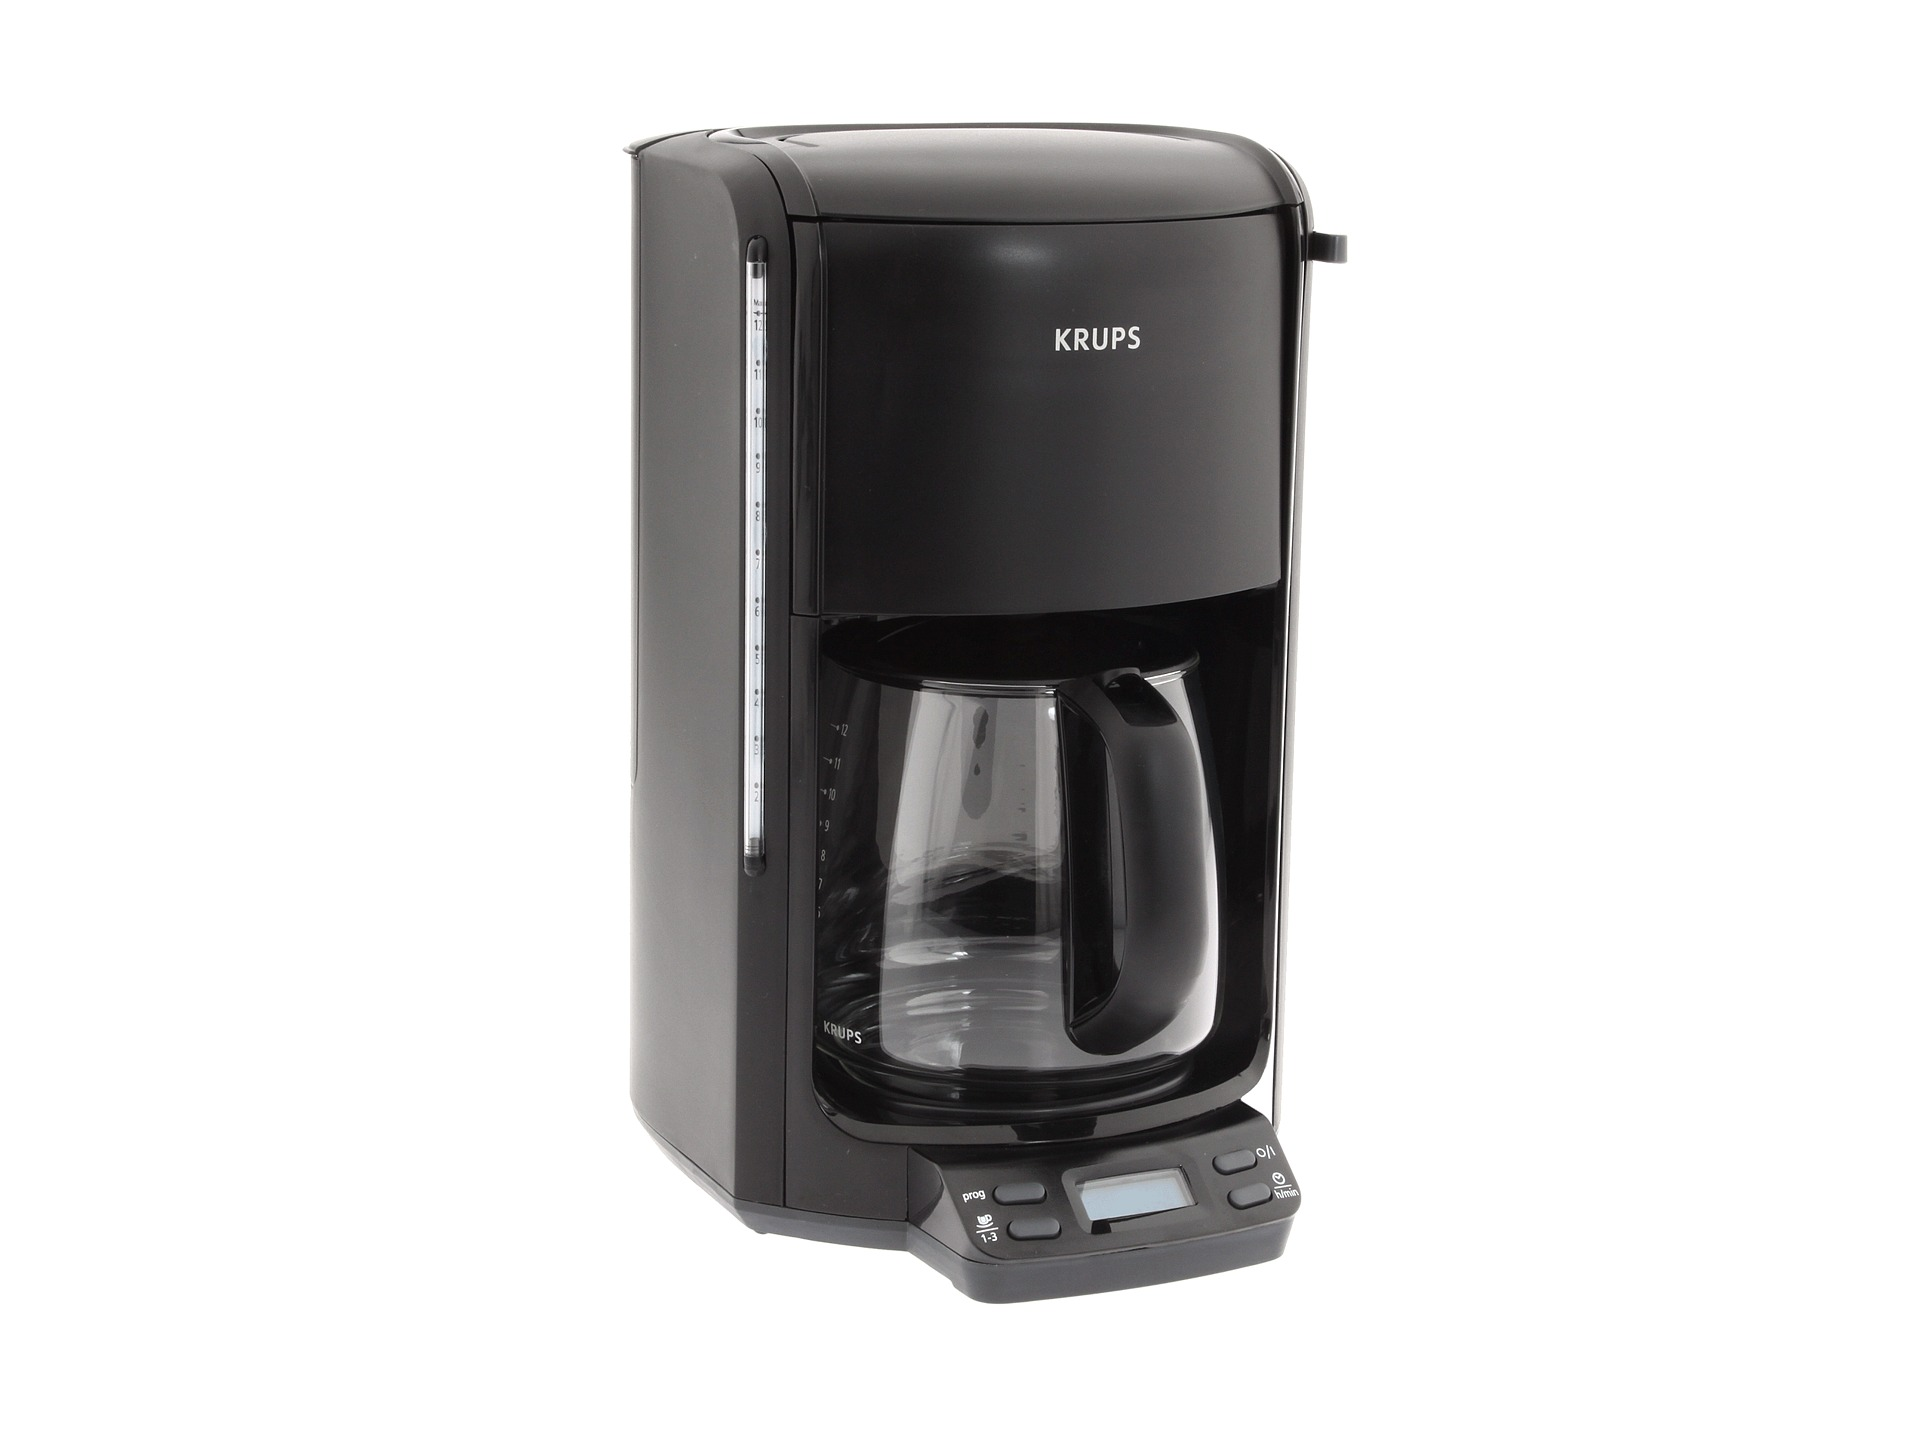 Krups Fme2 Pro Aroma 12 Cup Coffee Maker Black Shipped Free at Zappos